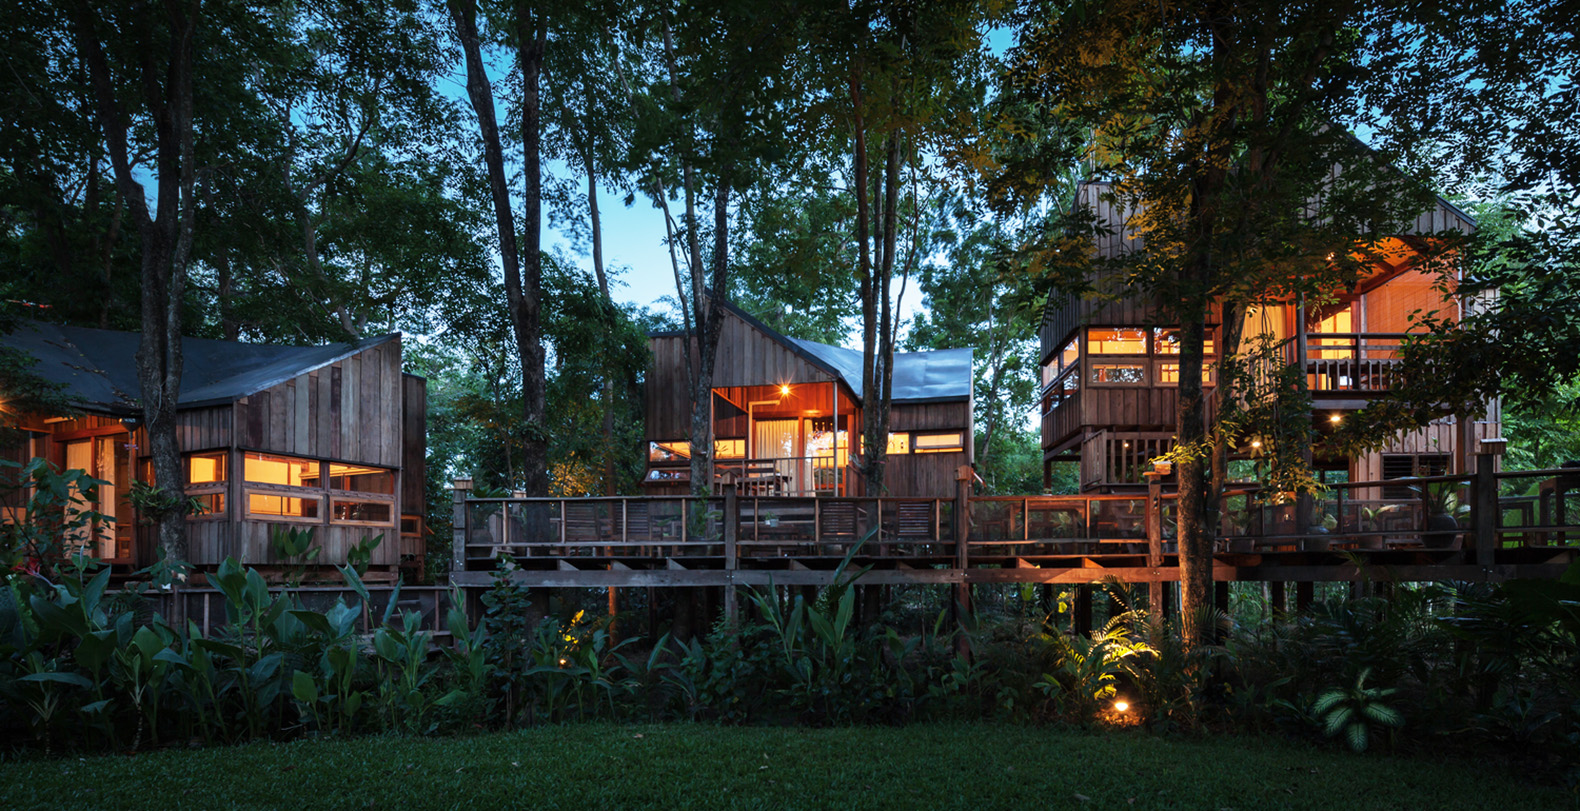 delightful treehouse residence weaves through a forest in thailand